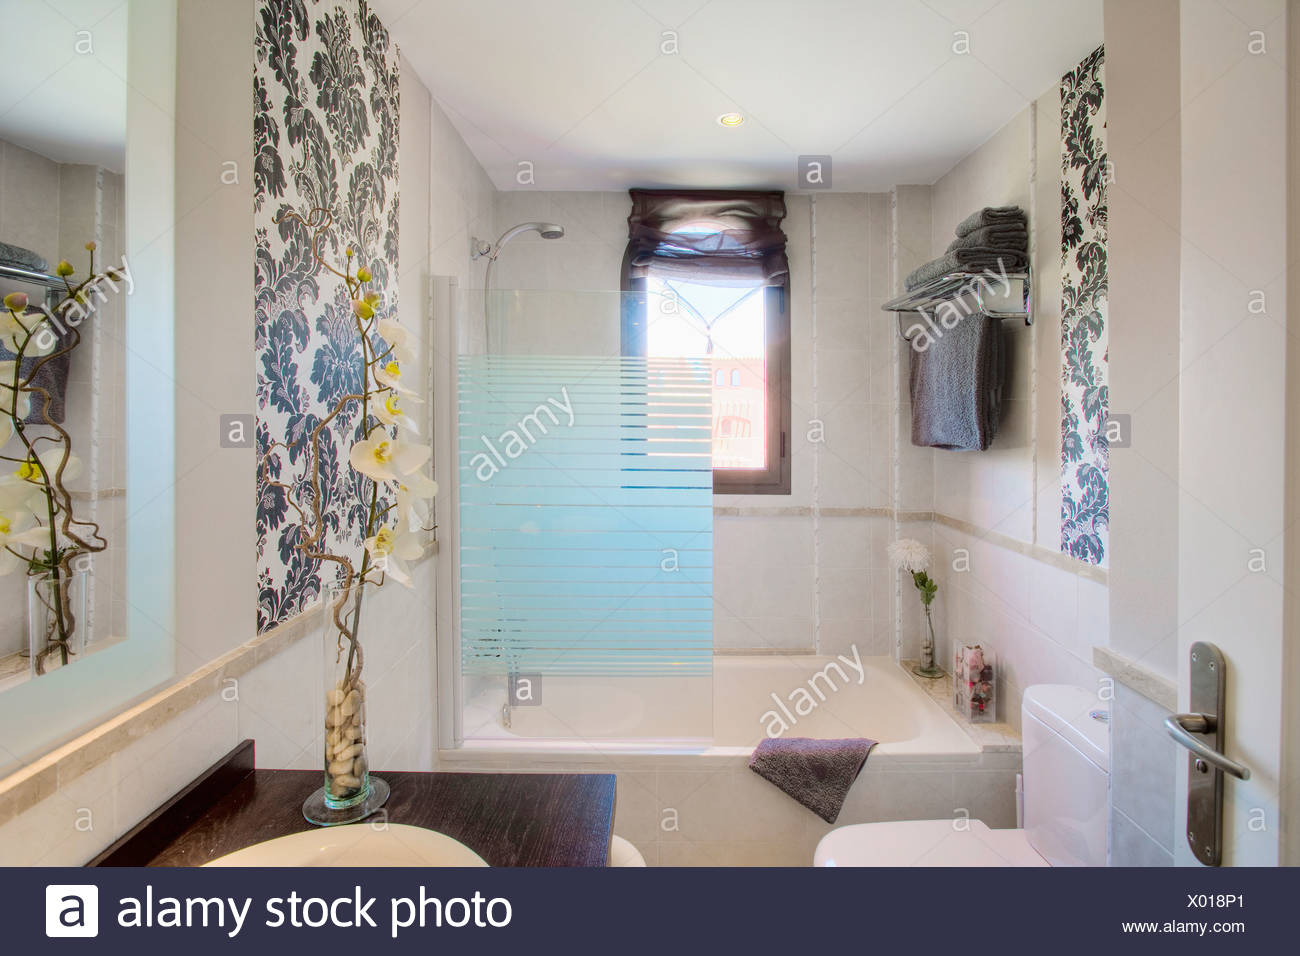 Small Modern Bathroom With Opaque Glass Shower Screen On Bath And Large Leaf Print Wallpaper On Two Walls